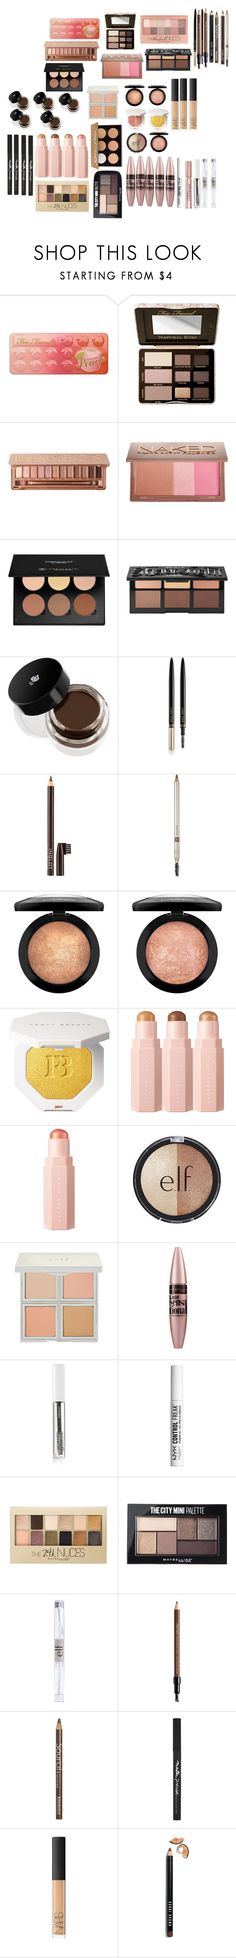 """""""makeup b"""" by cuteoutfits4you on Polyvore featuring Too Faced Cosmetics, Urban Decay, Maybelline, Anastasia Beverly Hills, Kat Von D, Lancôme, Lash Star Beauty, Inglot, Laura Mercier and Puma"""